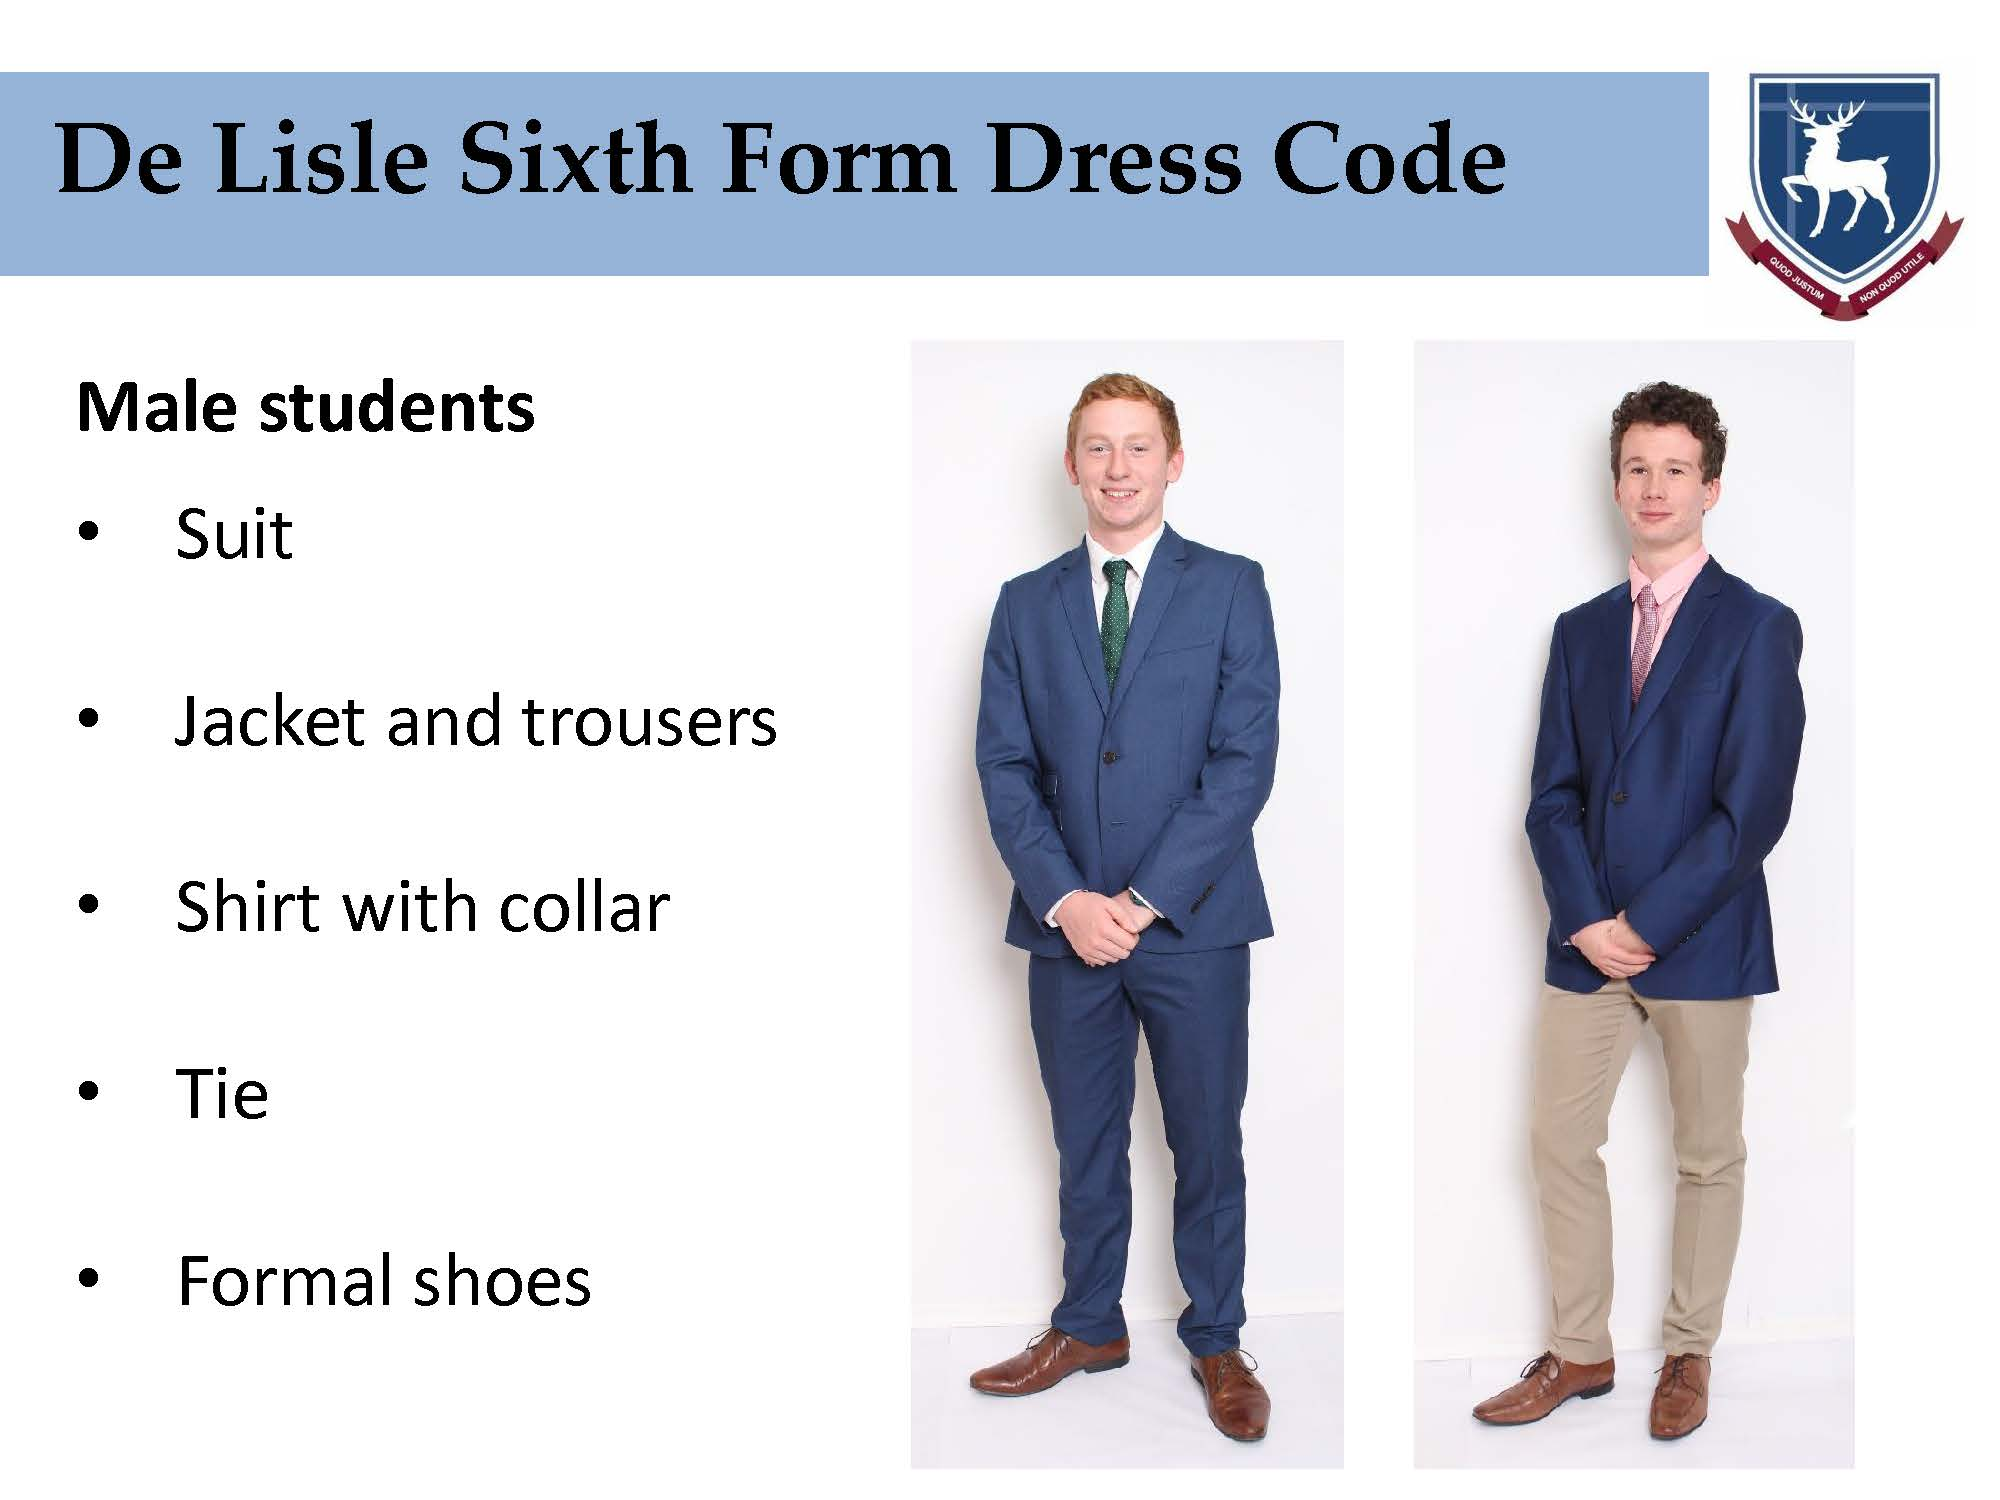 Sixth Form Dress Code brief Page 06